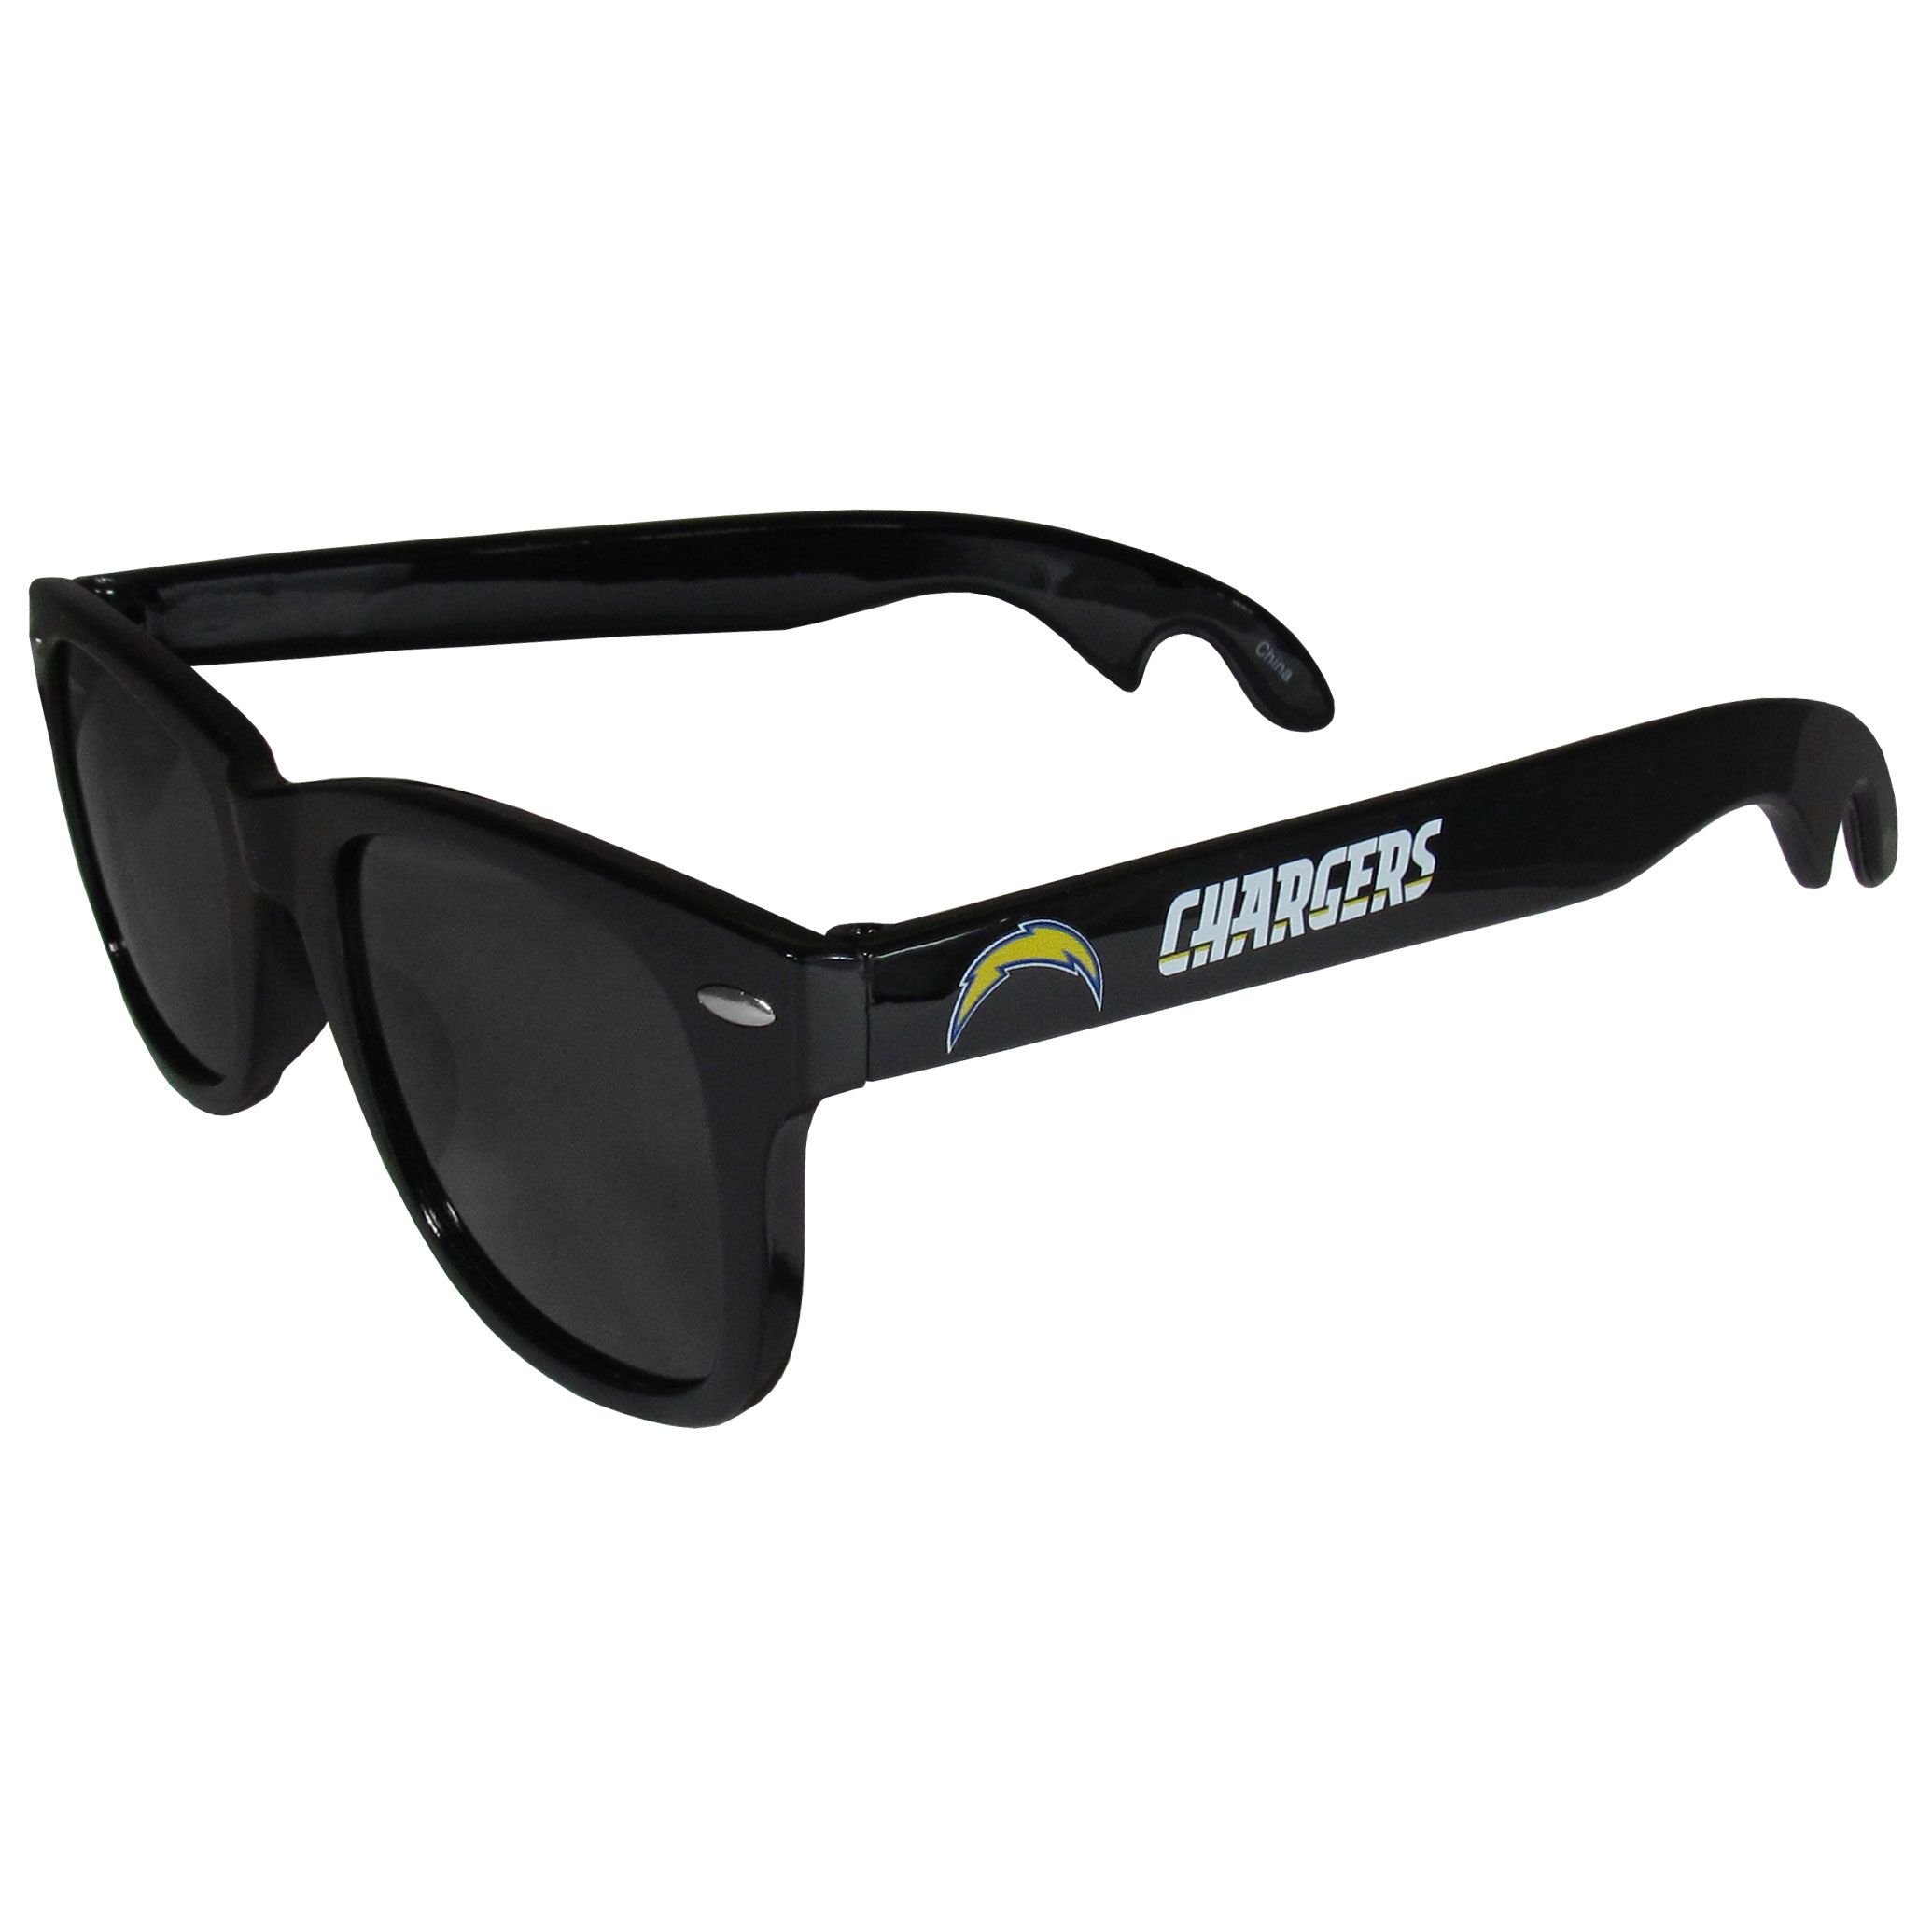 Los Angeles Chargers Beachfarer Bottle Opener Sunglasses - Seriously, these sunglasses open bottles! Keep the party going with these amazing Los Angeles Chargers bottle opener sunglasses. The stylish retro frames feature team designs on the arms and functional bottle openers on the end of the arms. Whether you are at the beach or having a backyard BBQ on game day, these shades will keep your eyes protected with 100% UVA/UVB protection and keep you hydrated with the handy bottle opener arms.